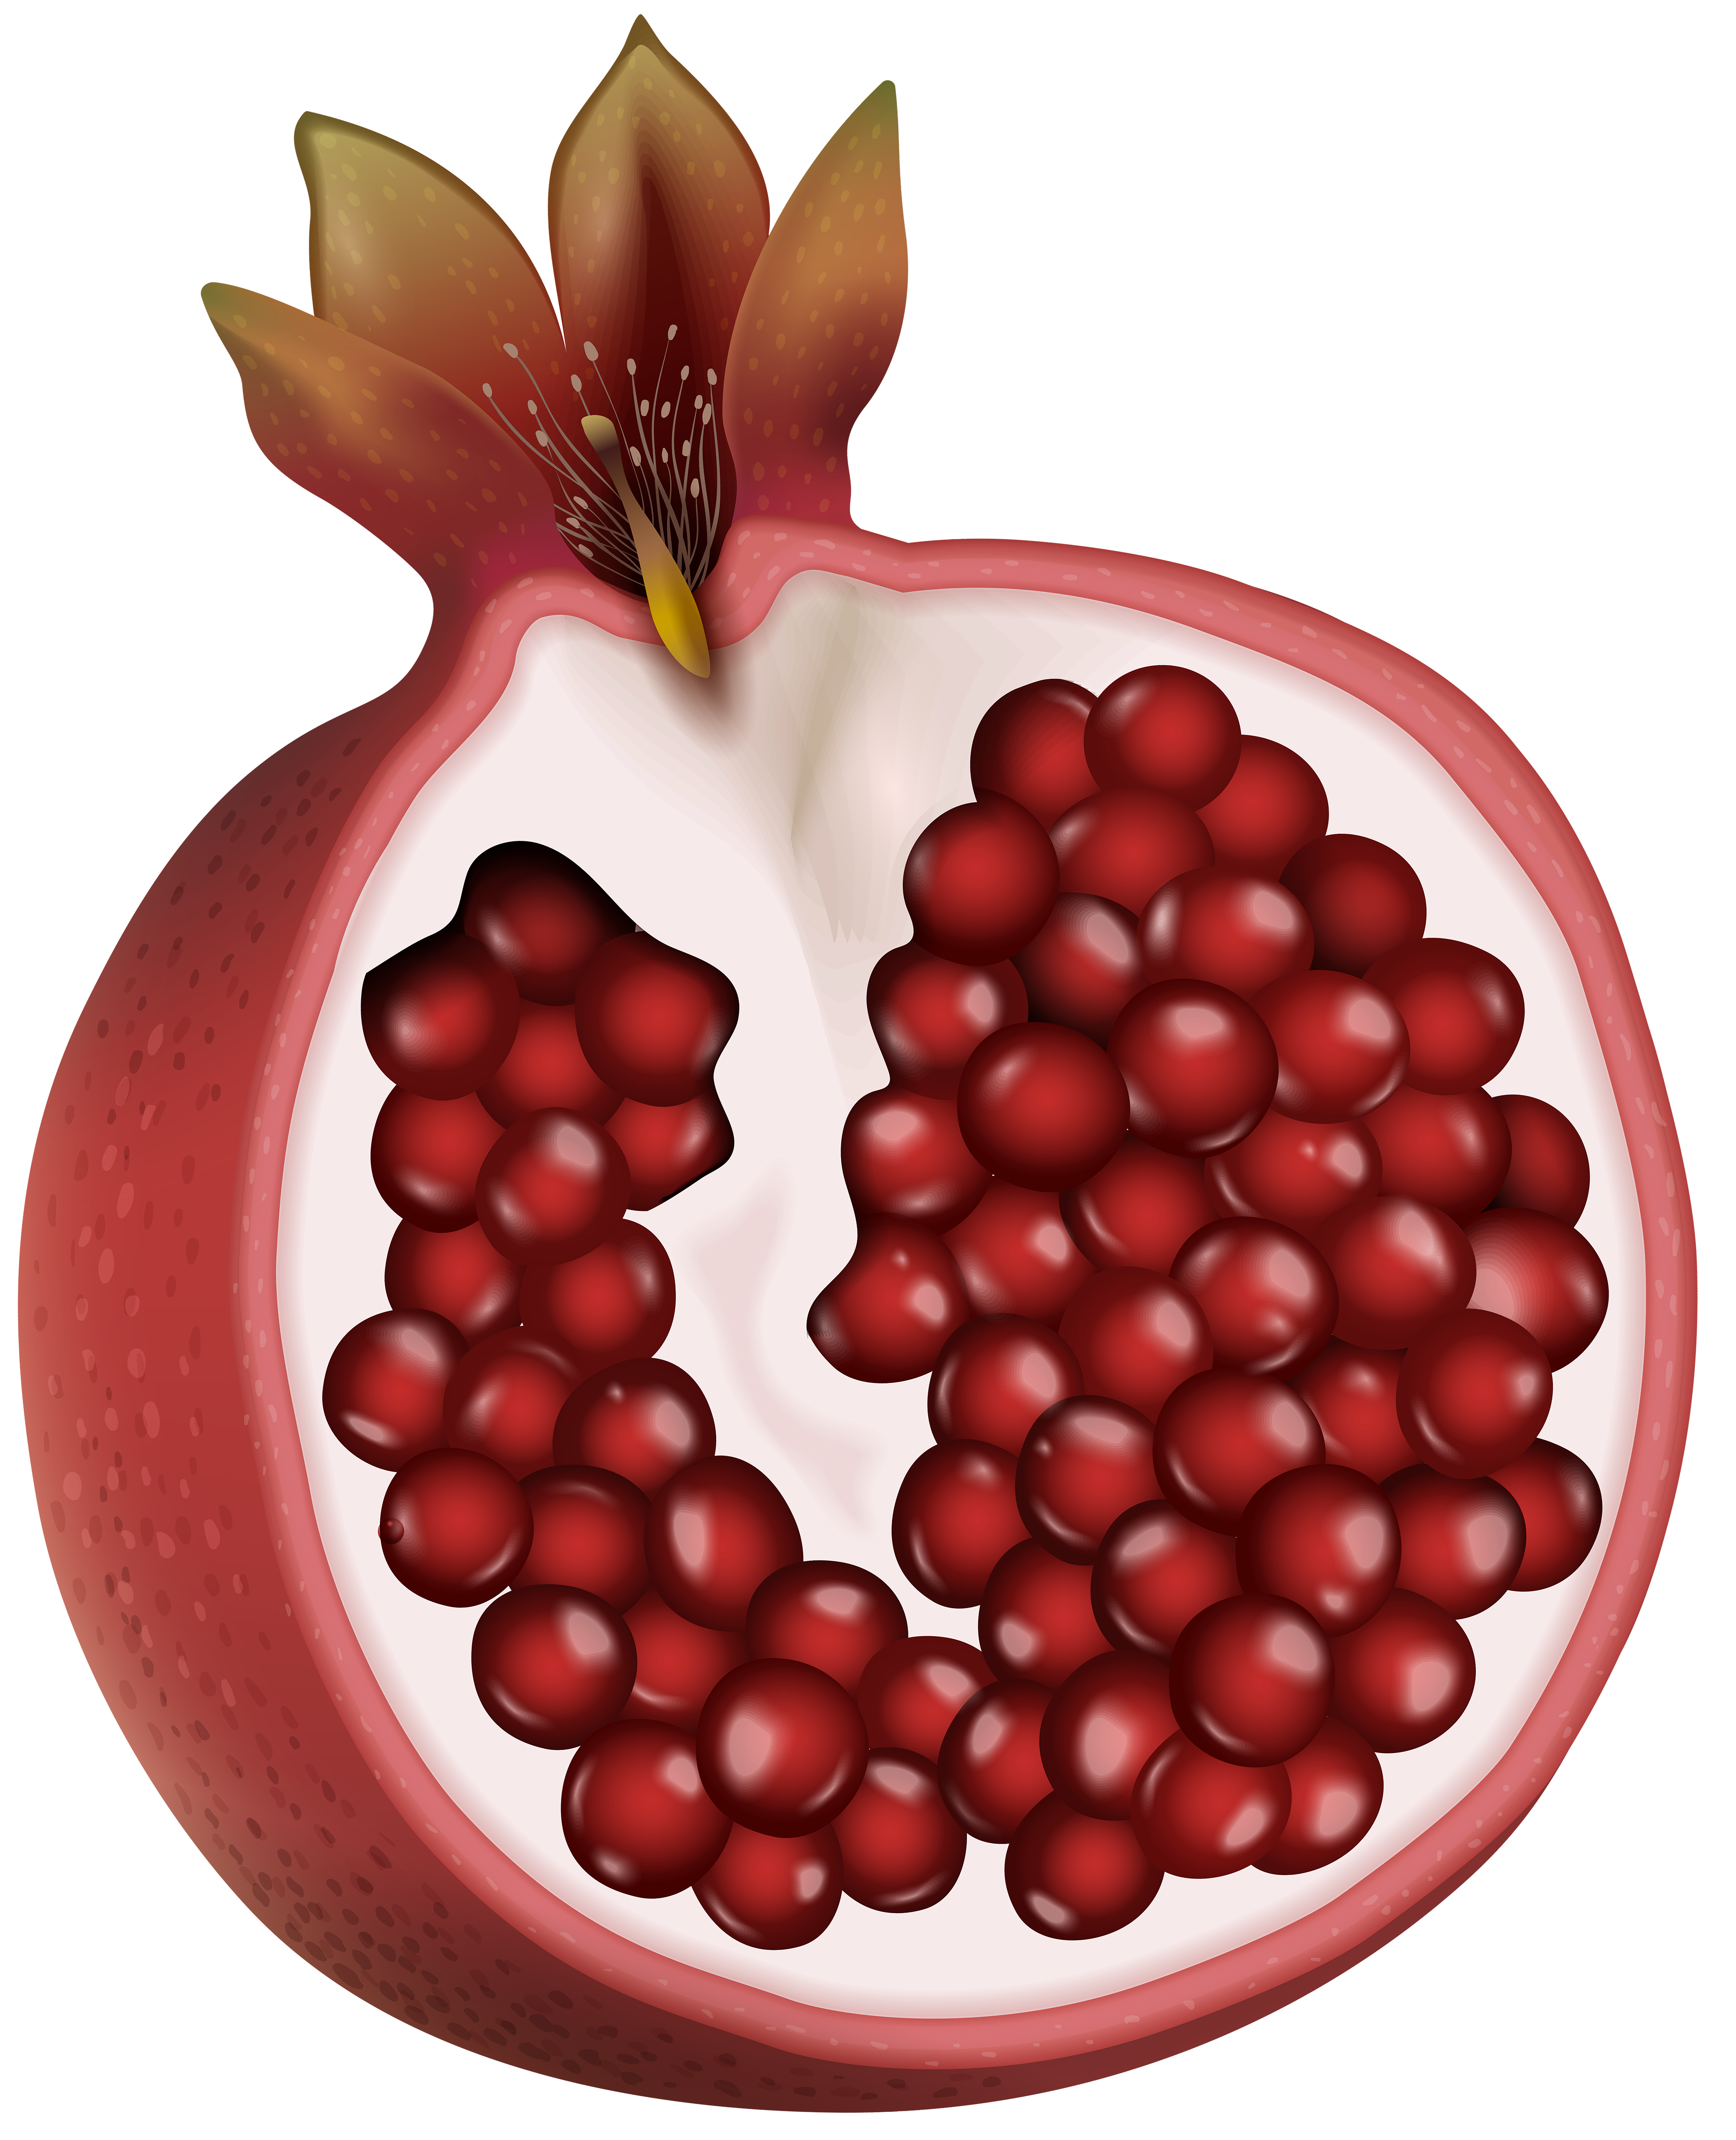 Pomegranate clipart pomegranite. Red png clip art